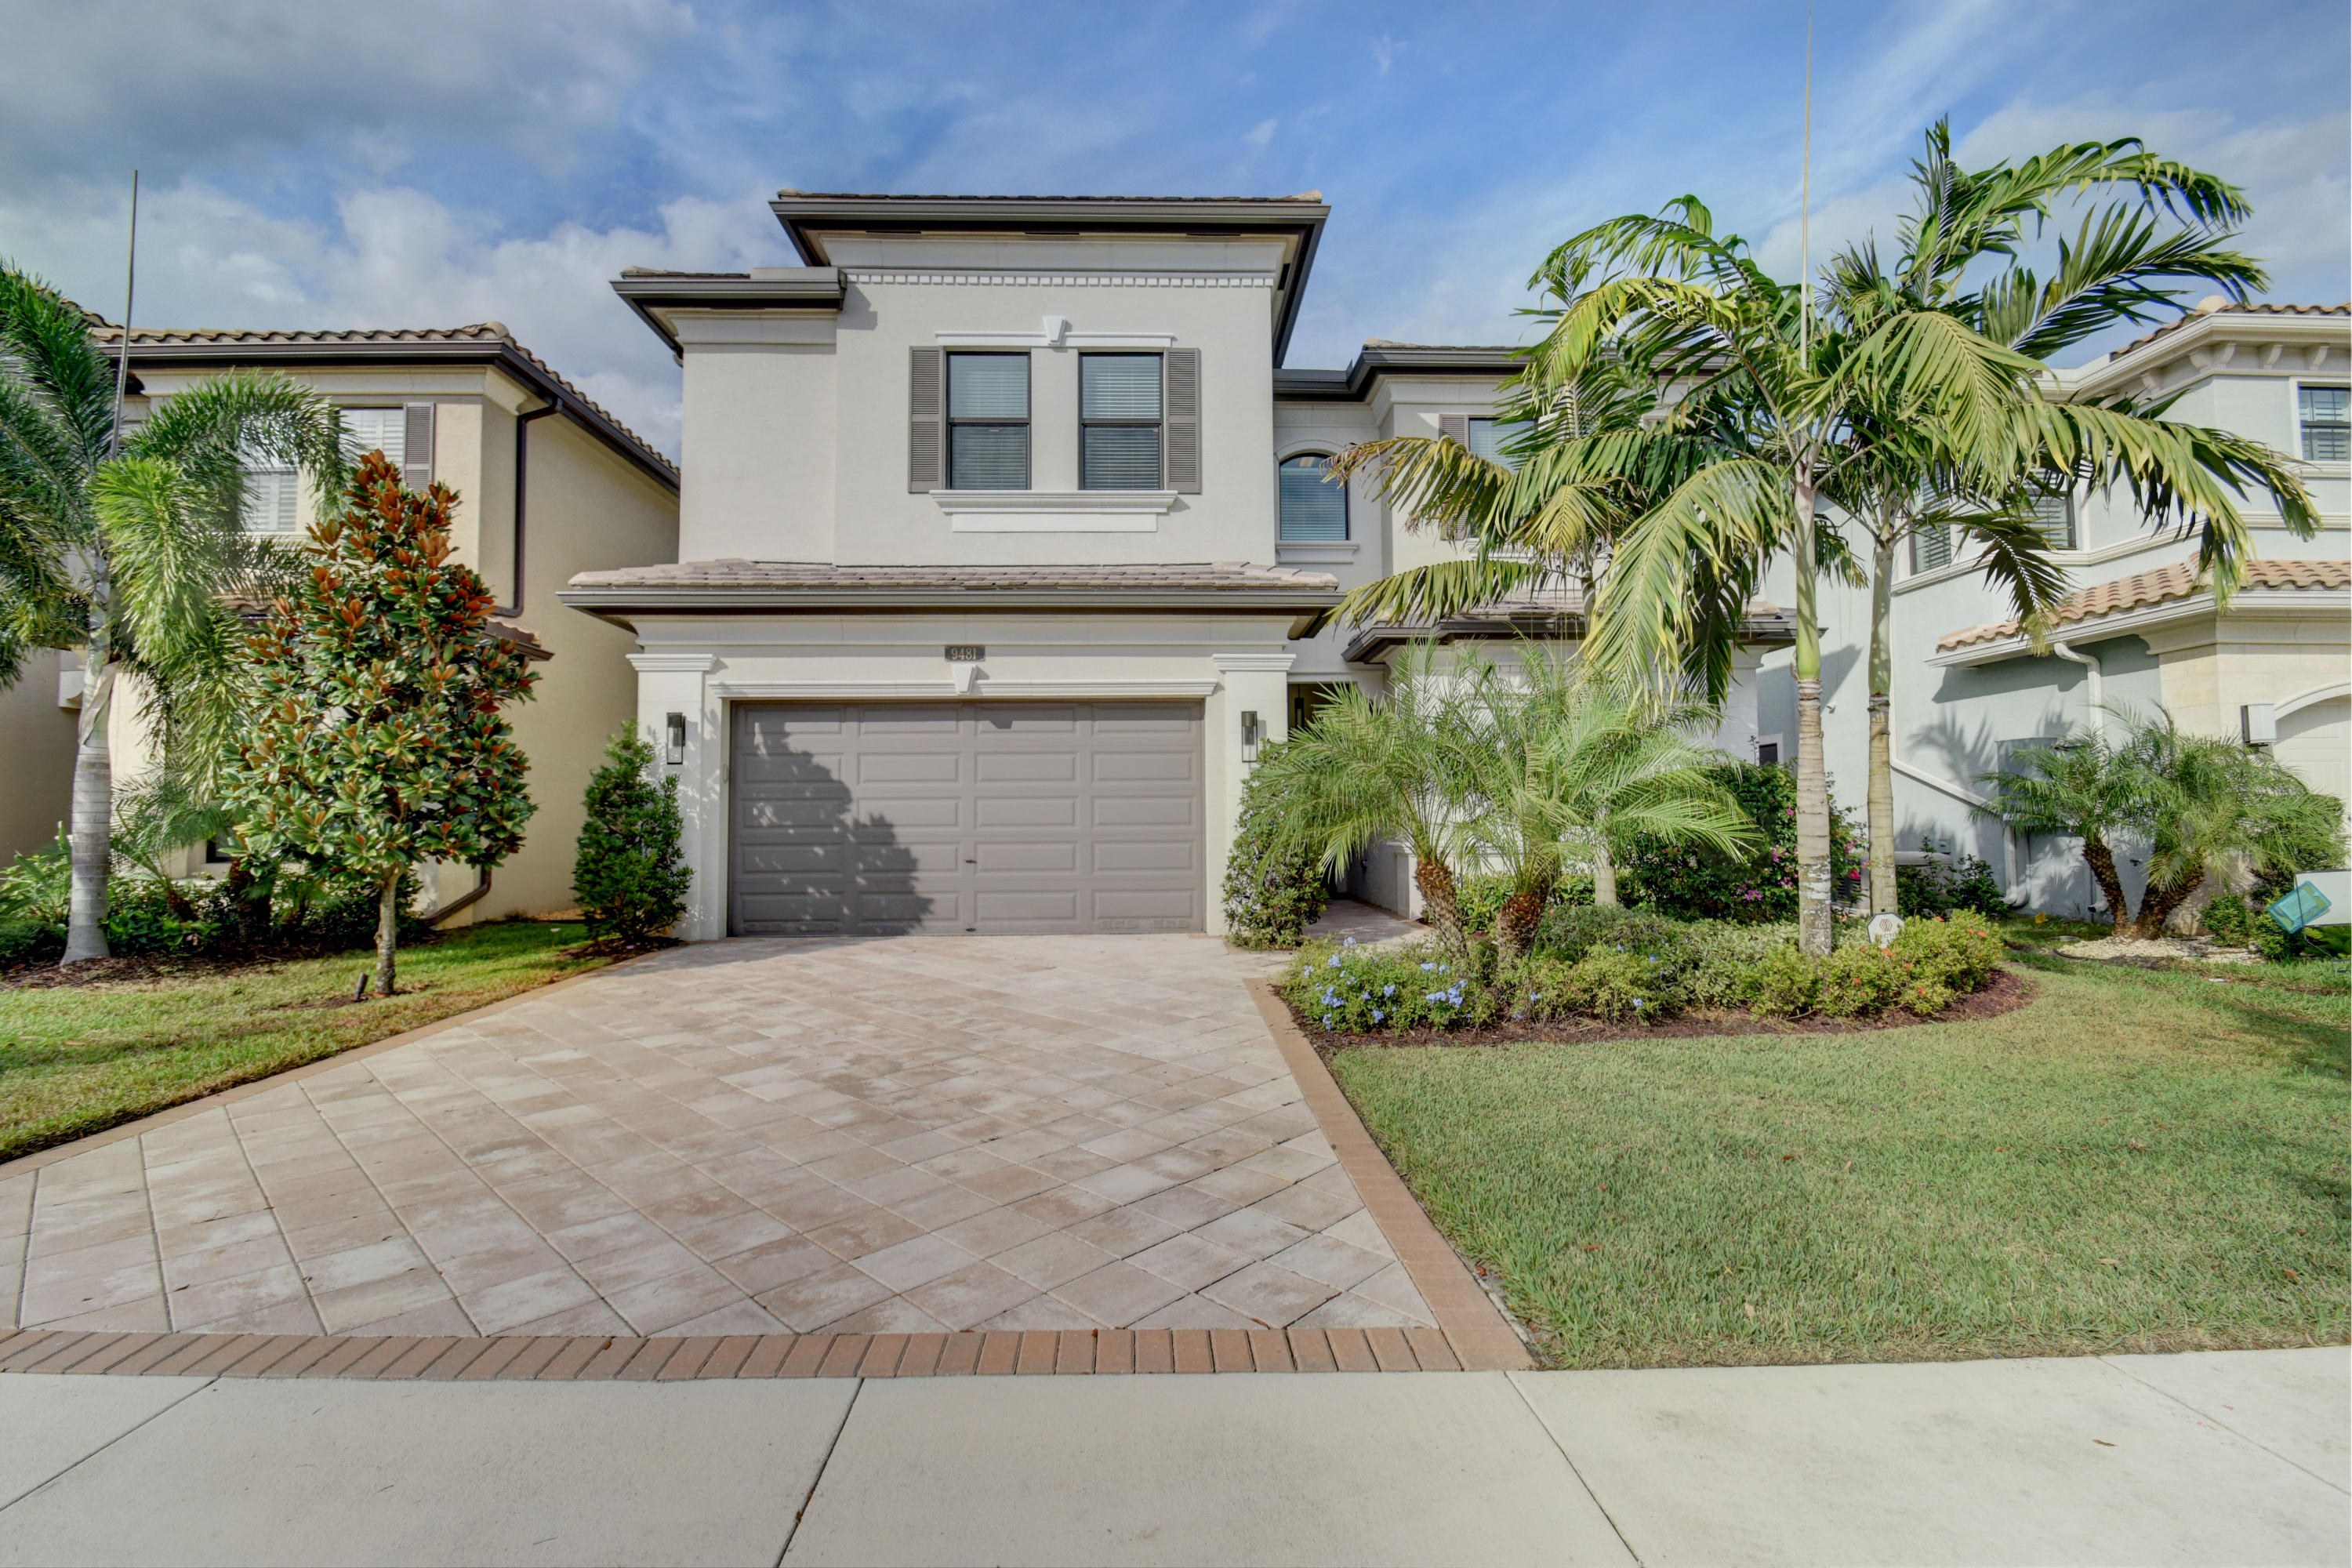 9481 Eden Roc Court  Delray Beach, FL 33446